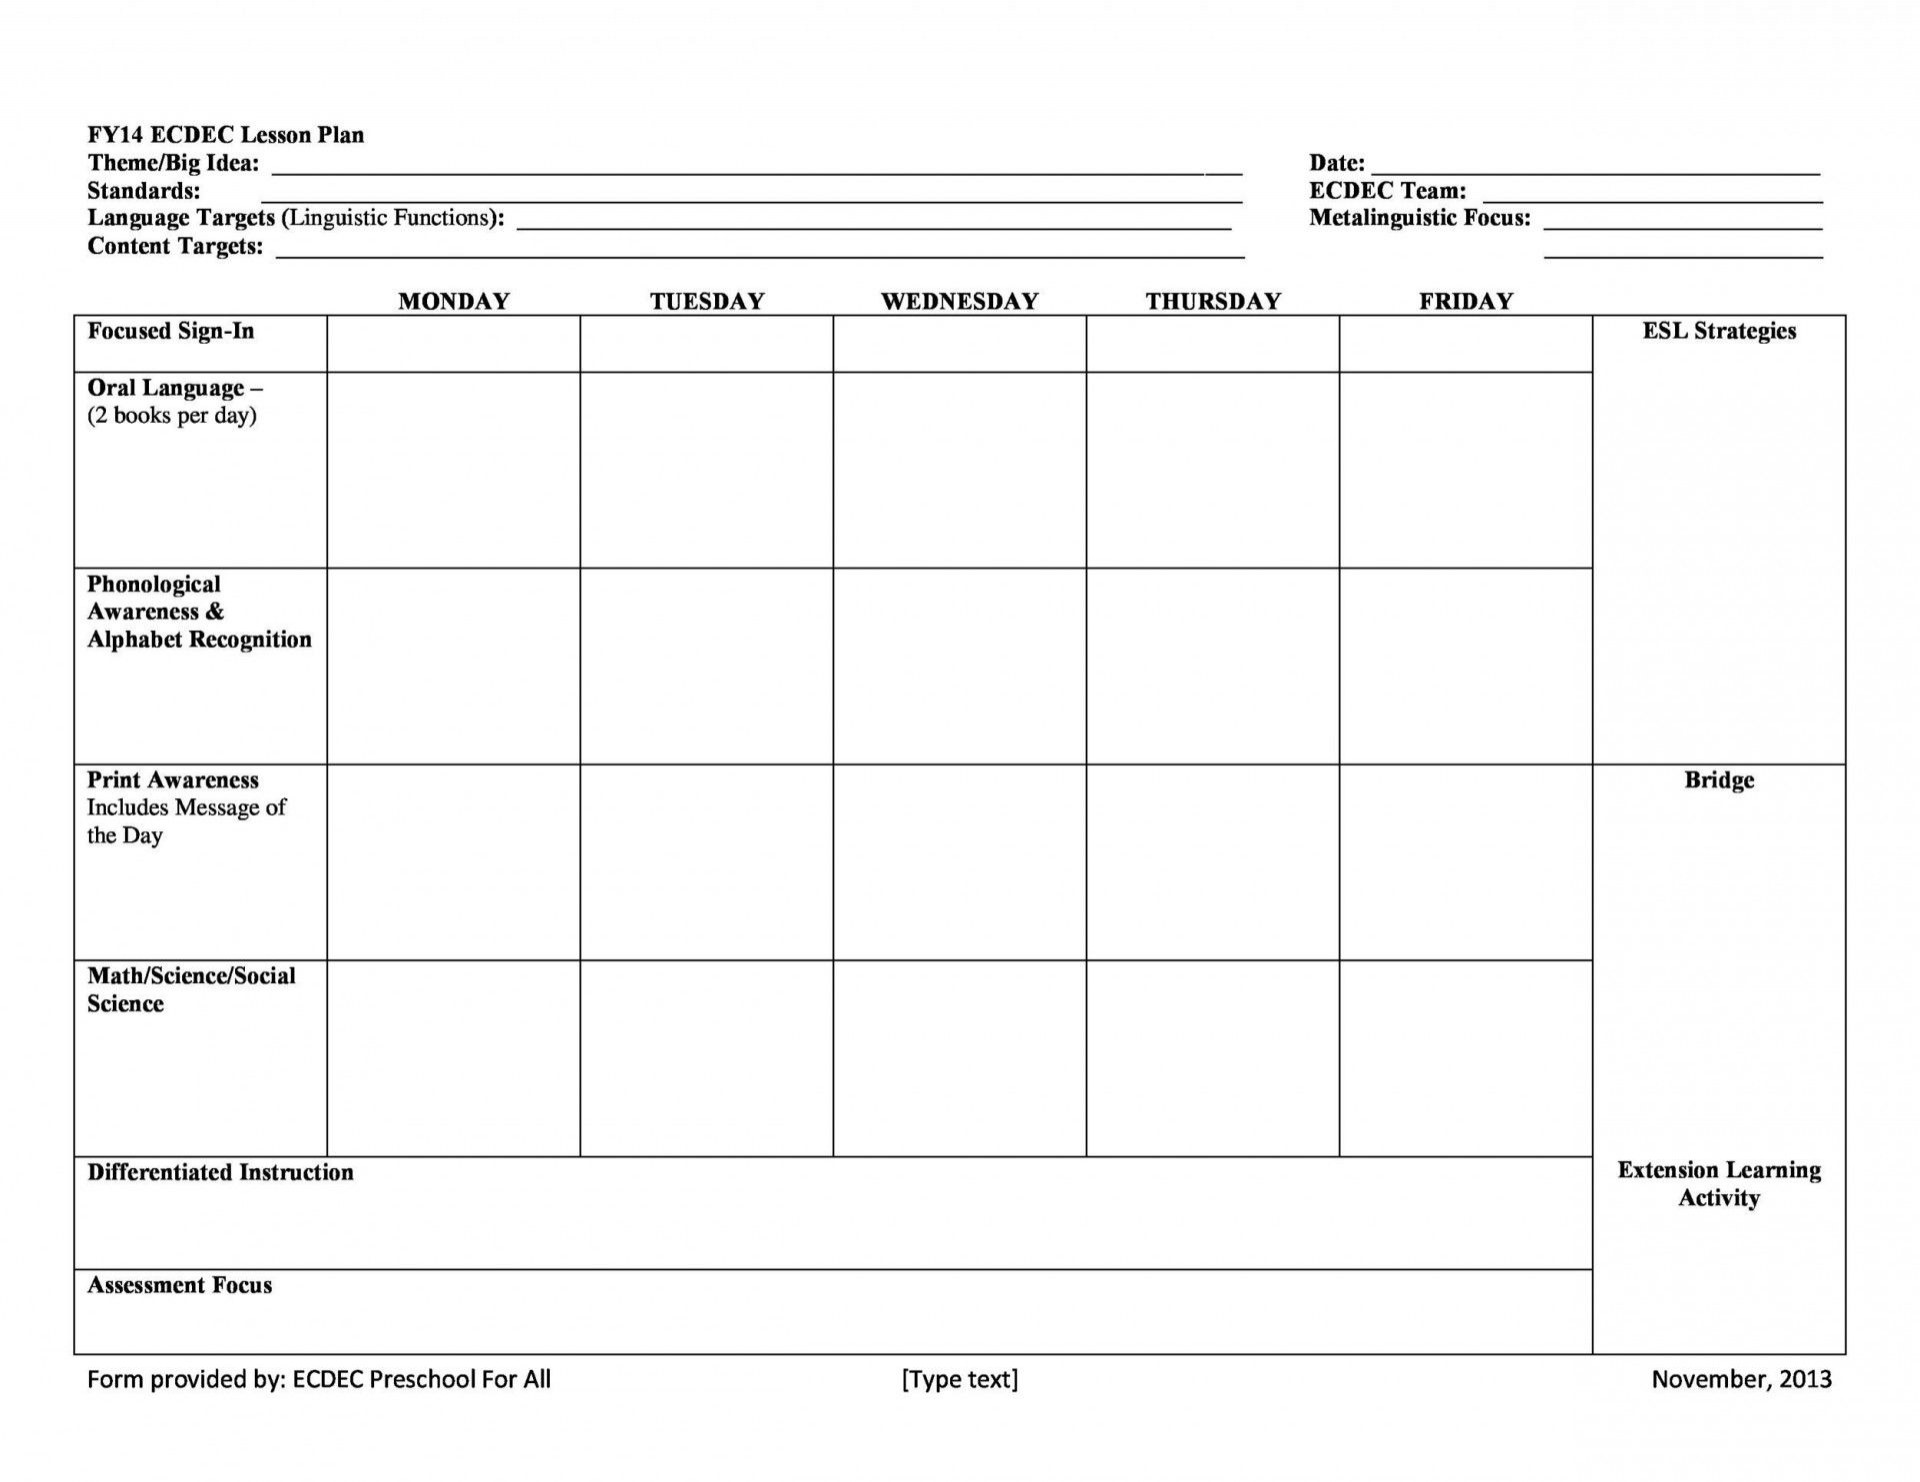 003 Impressive Free Printable Lesson Plan Template For High School Concept 1920